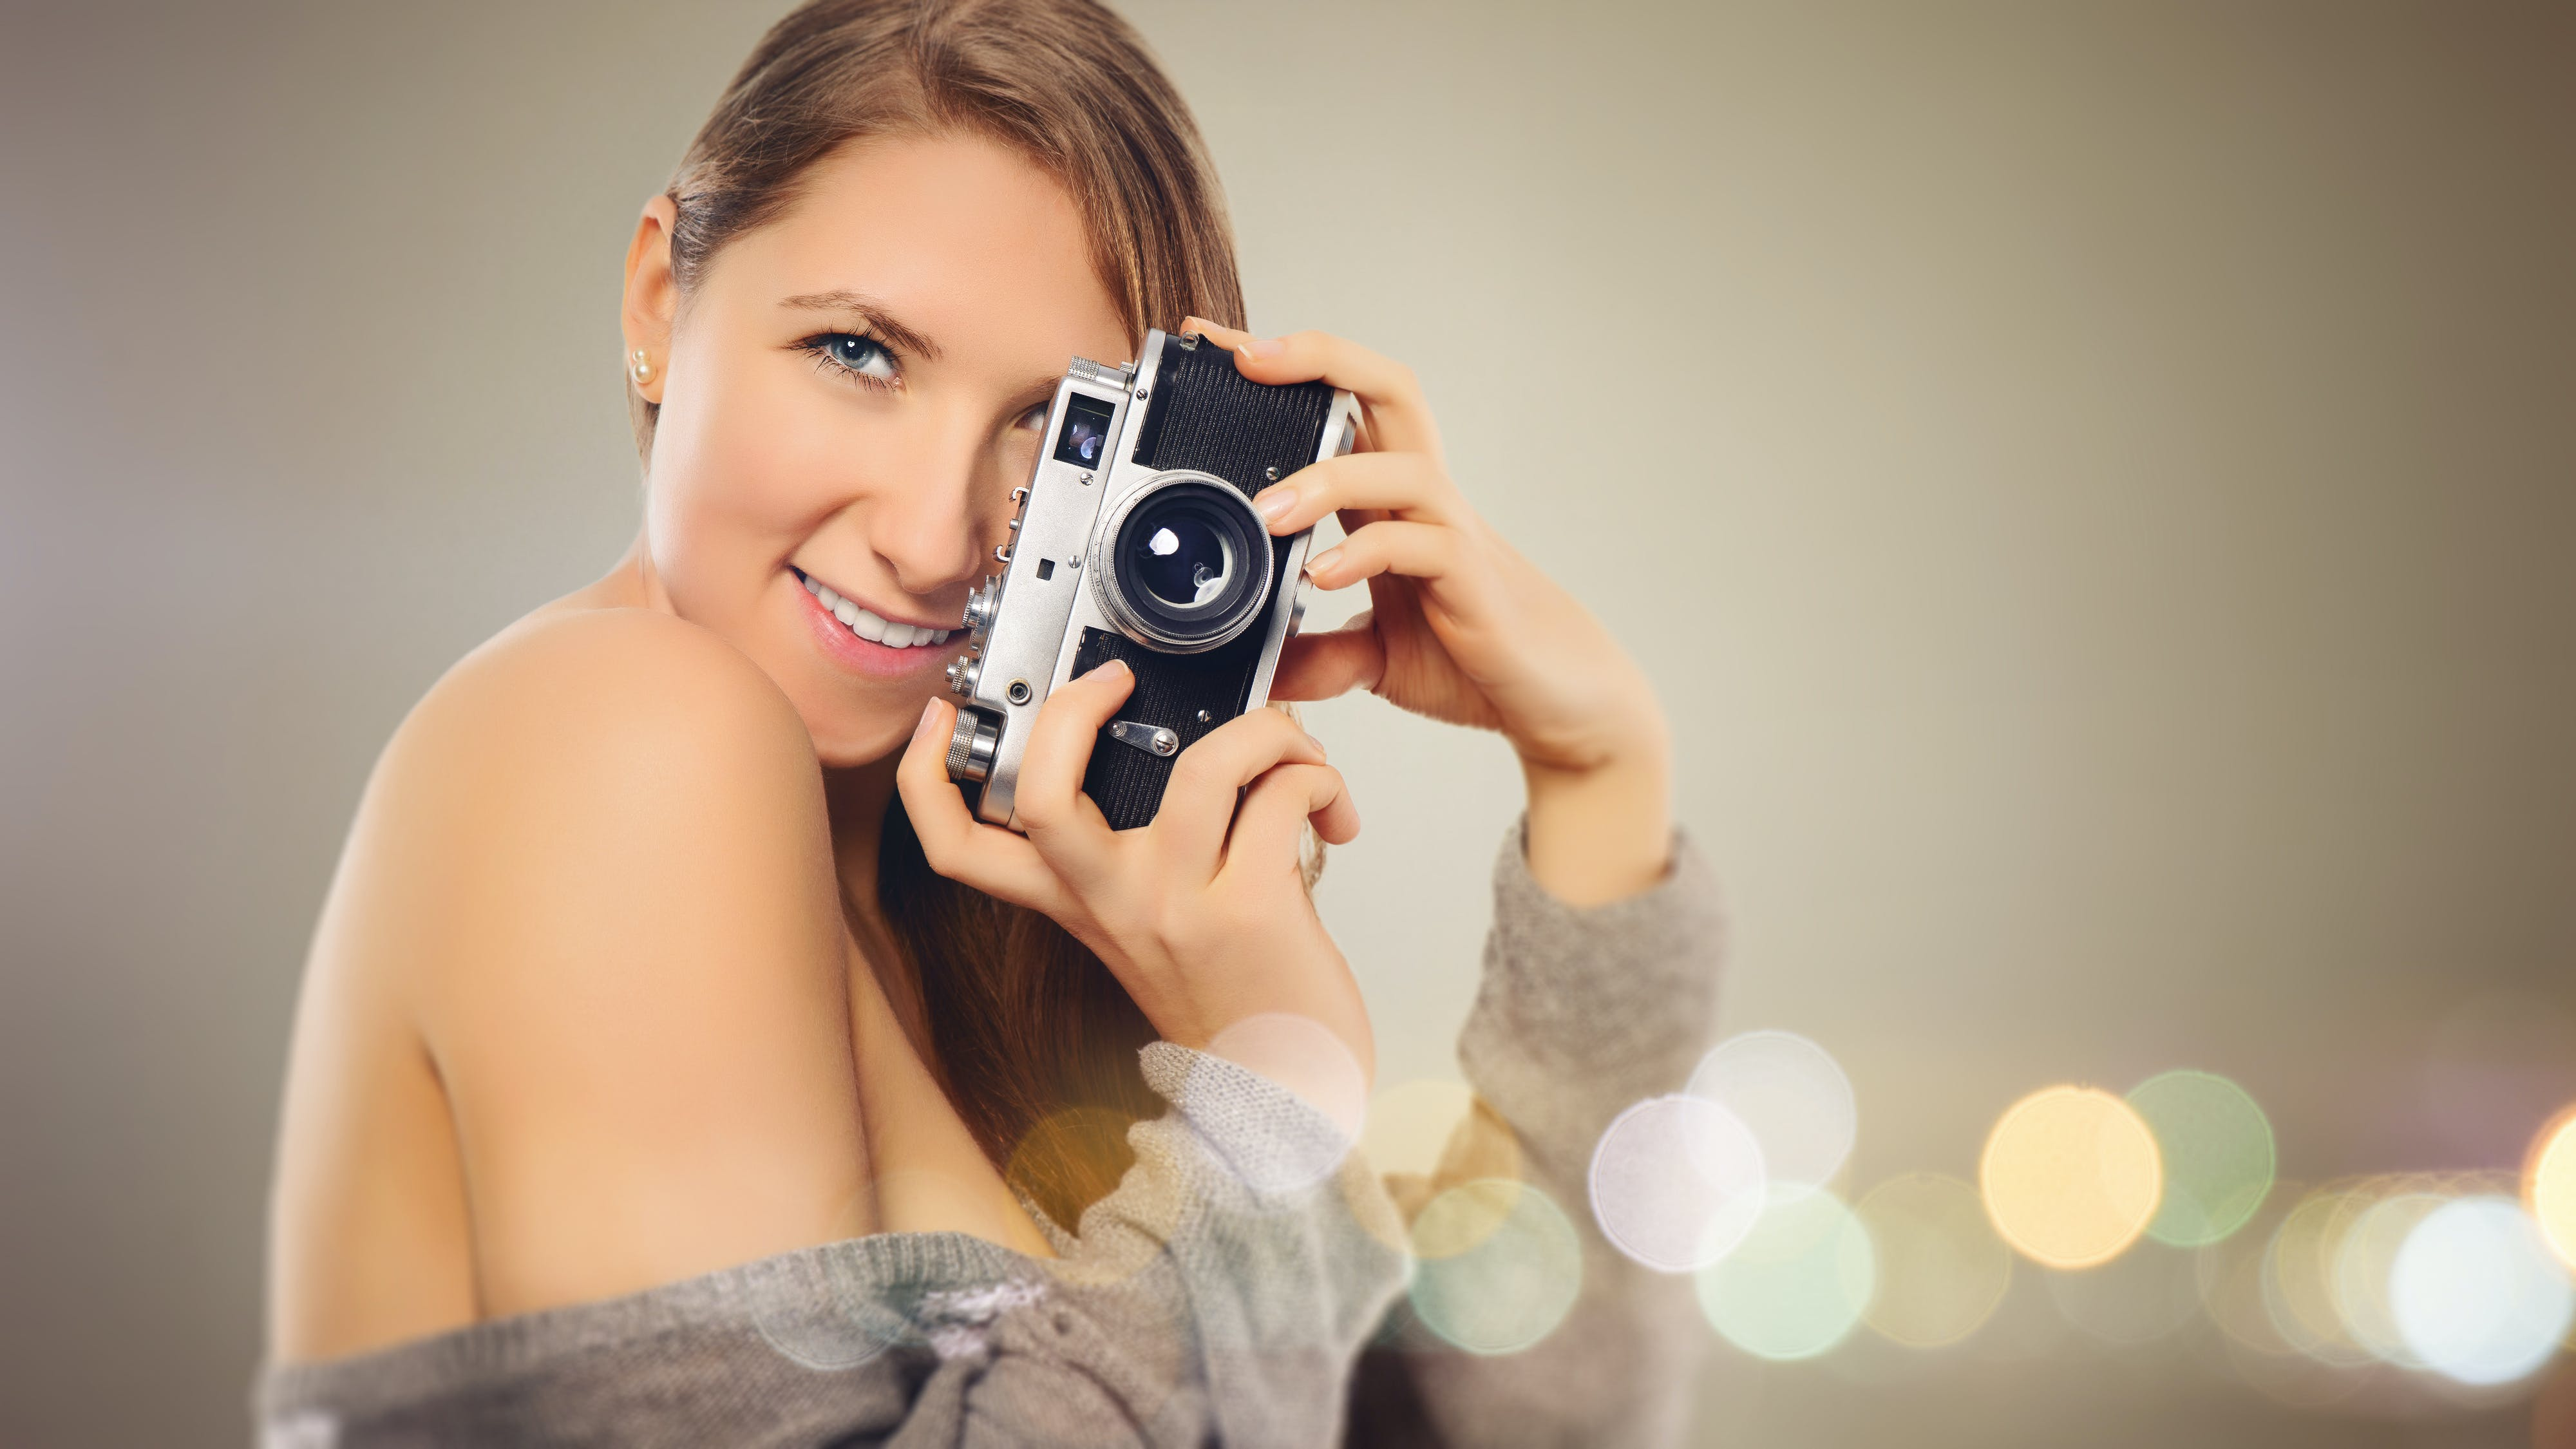 Woman With Gray Dress Holding Camera